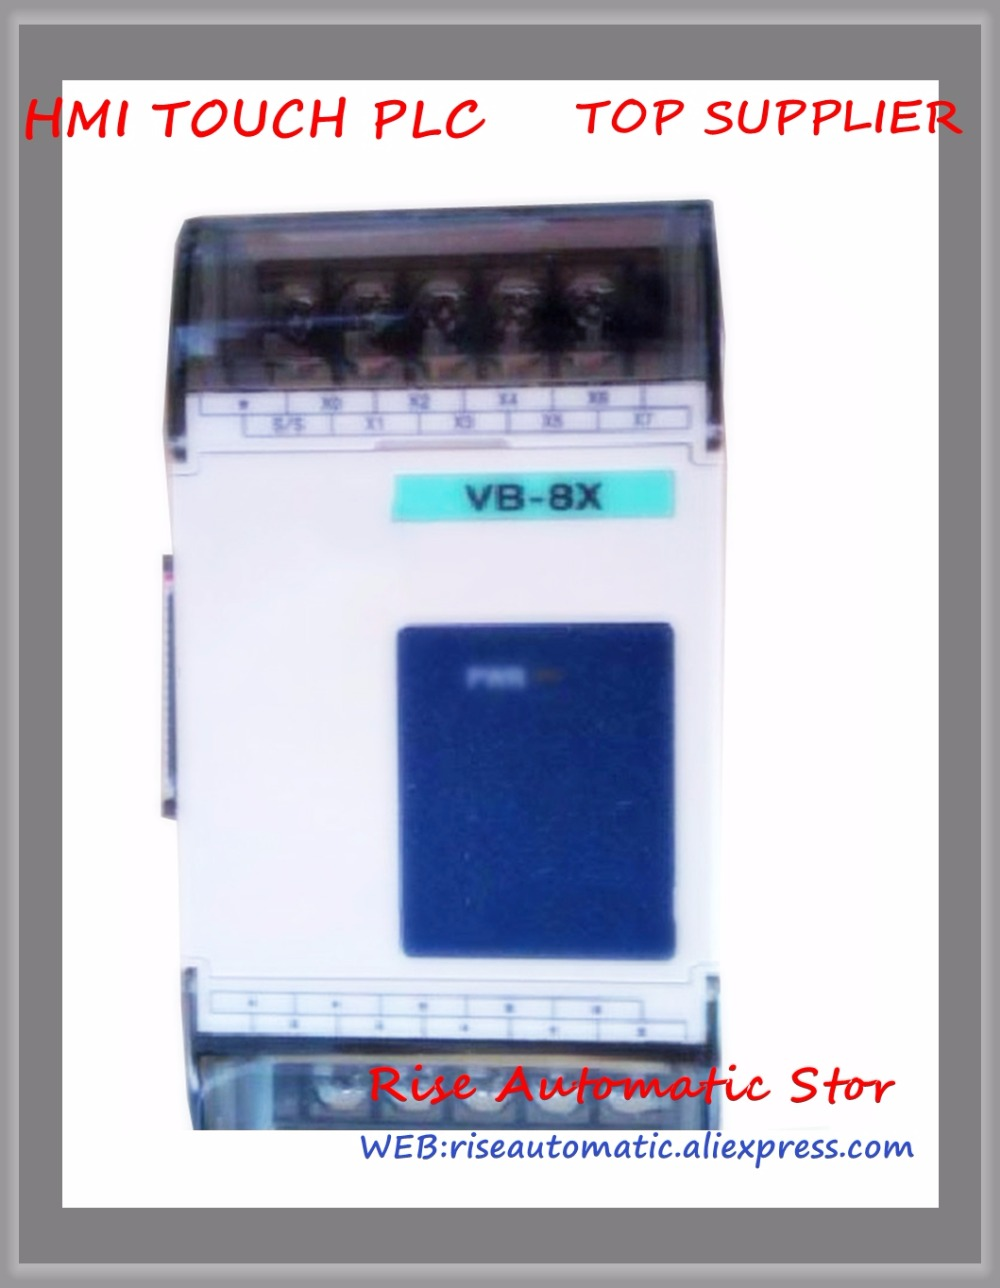 VB-8X PLC New Original 24VDC 8 point input Expansion Module new original vb 16yr plc 24vdc 16 point input expansion module